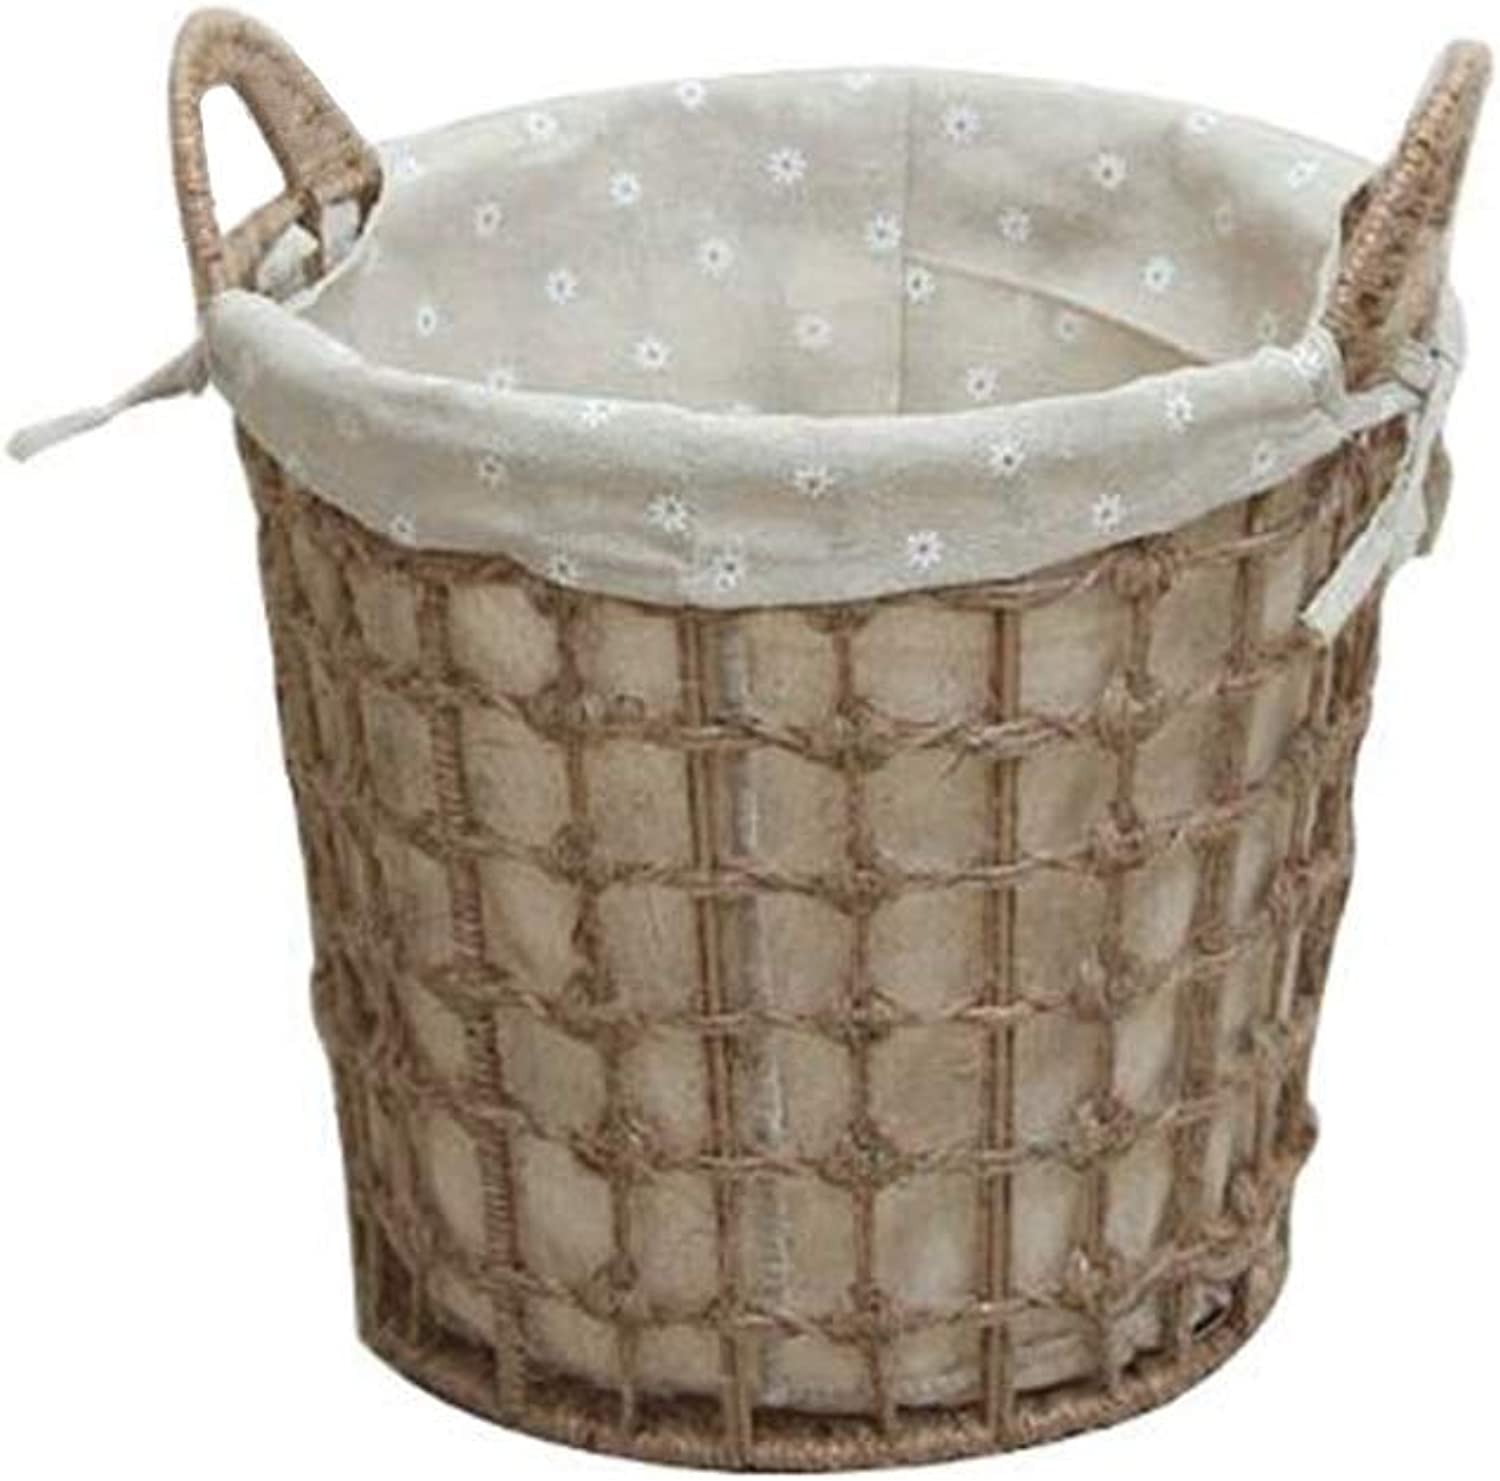 MUMA Storage Basket Round with Handle Rattan Weaving Lining Detachable Easy to Clean Home Supplies (Size   25.5  32.5CM)